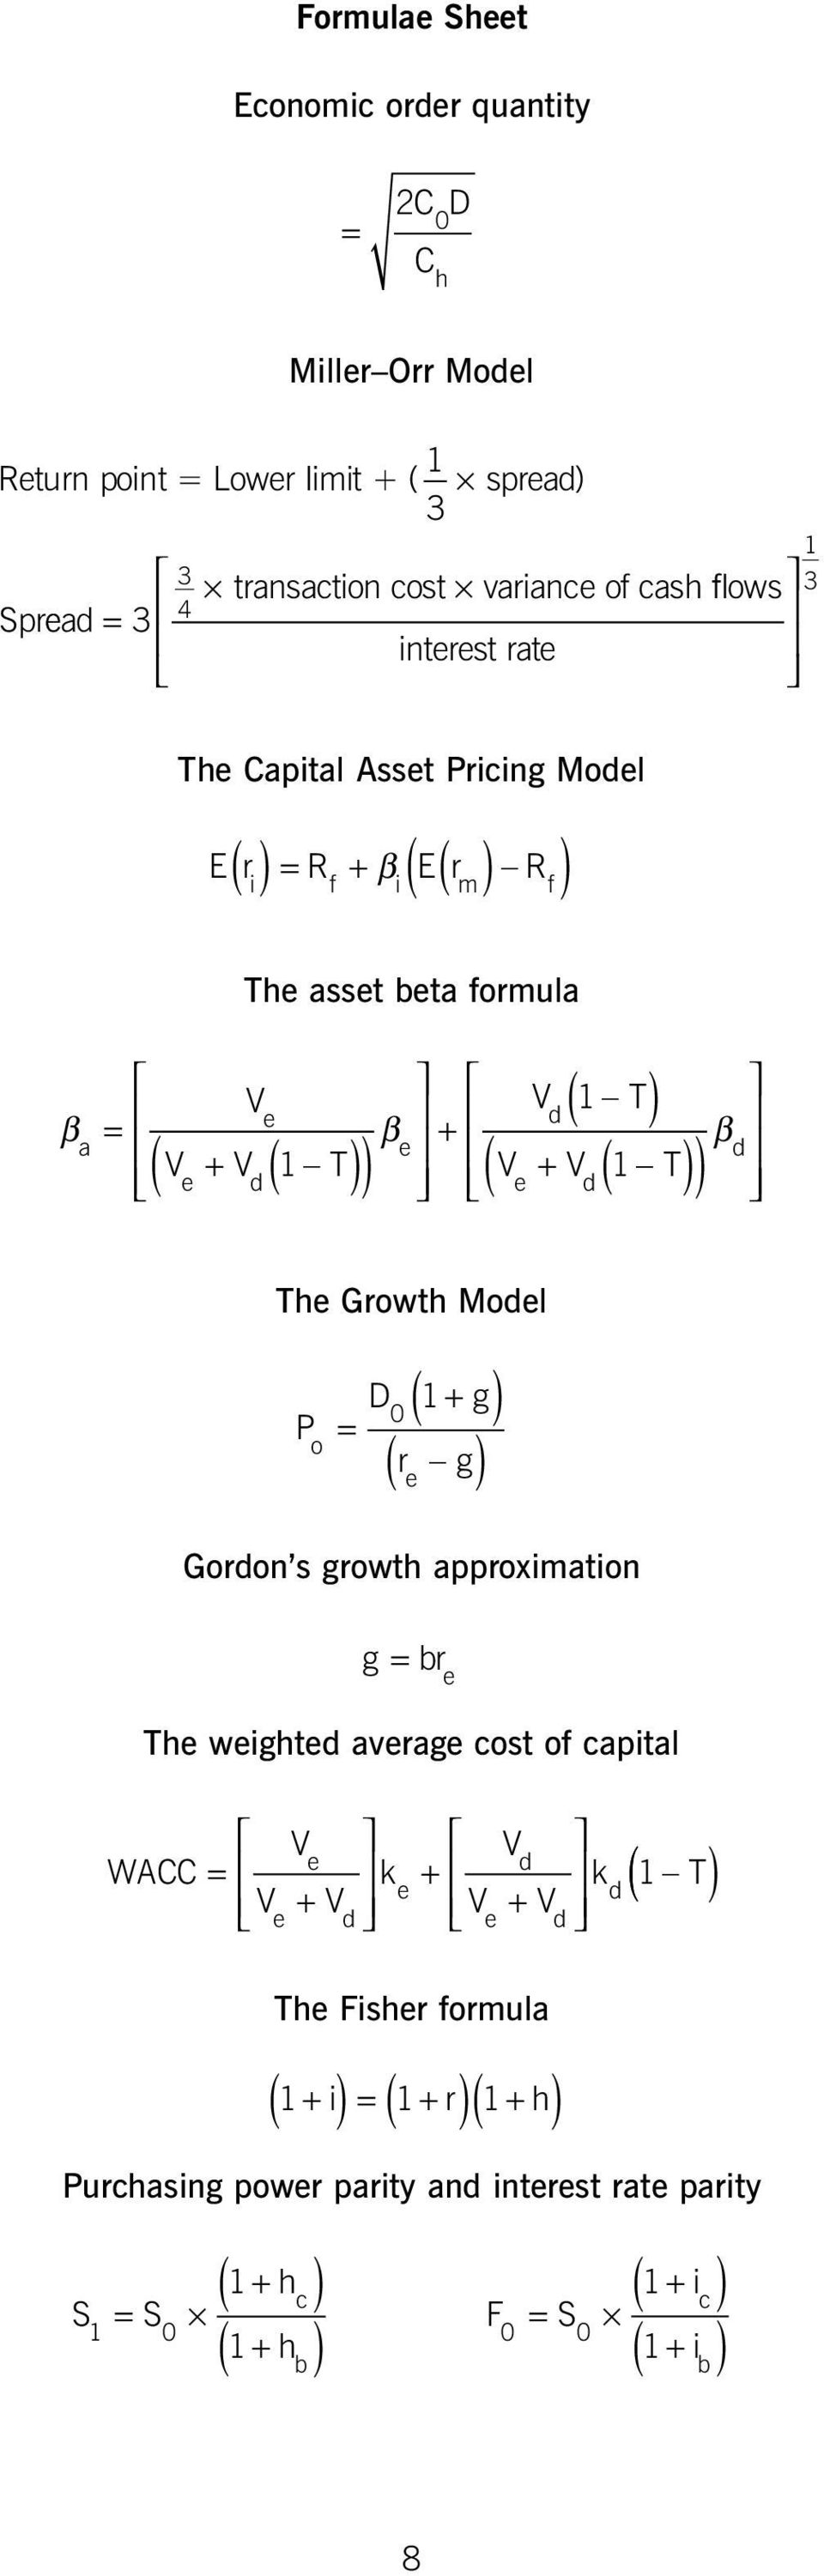 e d( )) β d The Growth Model P o ( ) D + g 0 = 1 r g ( e ) Gordon s growth approximation g = br e The weighted average cost of capital V WACC V V k V e d = + e V V k 1 d +